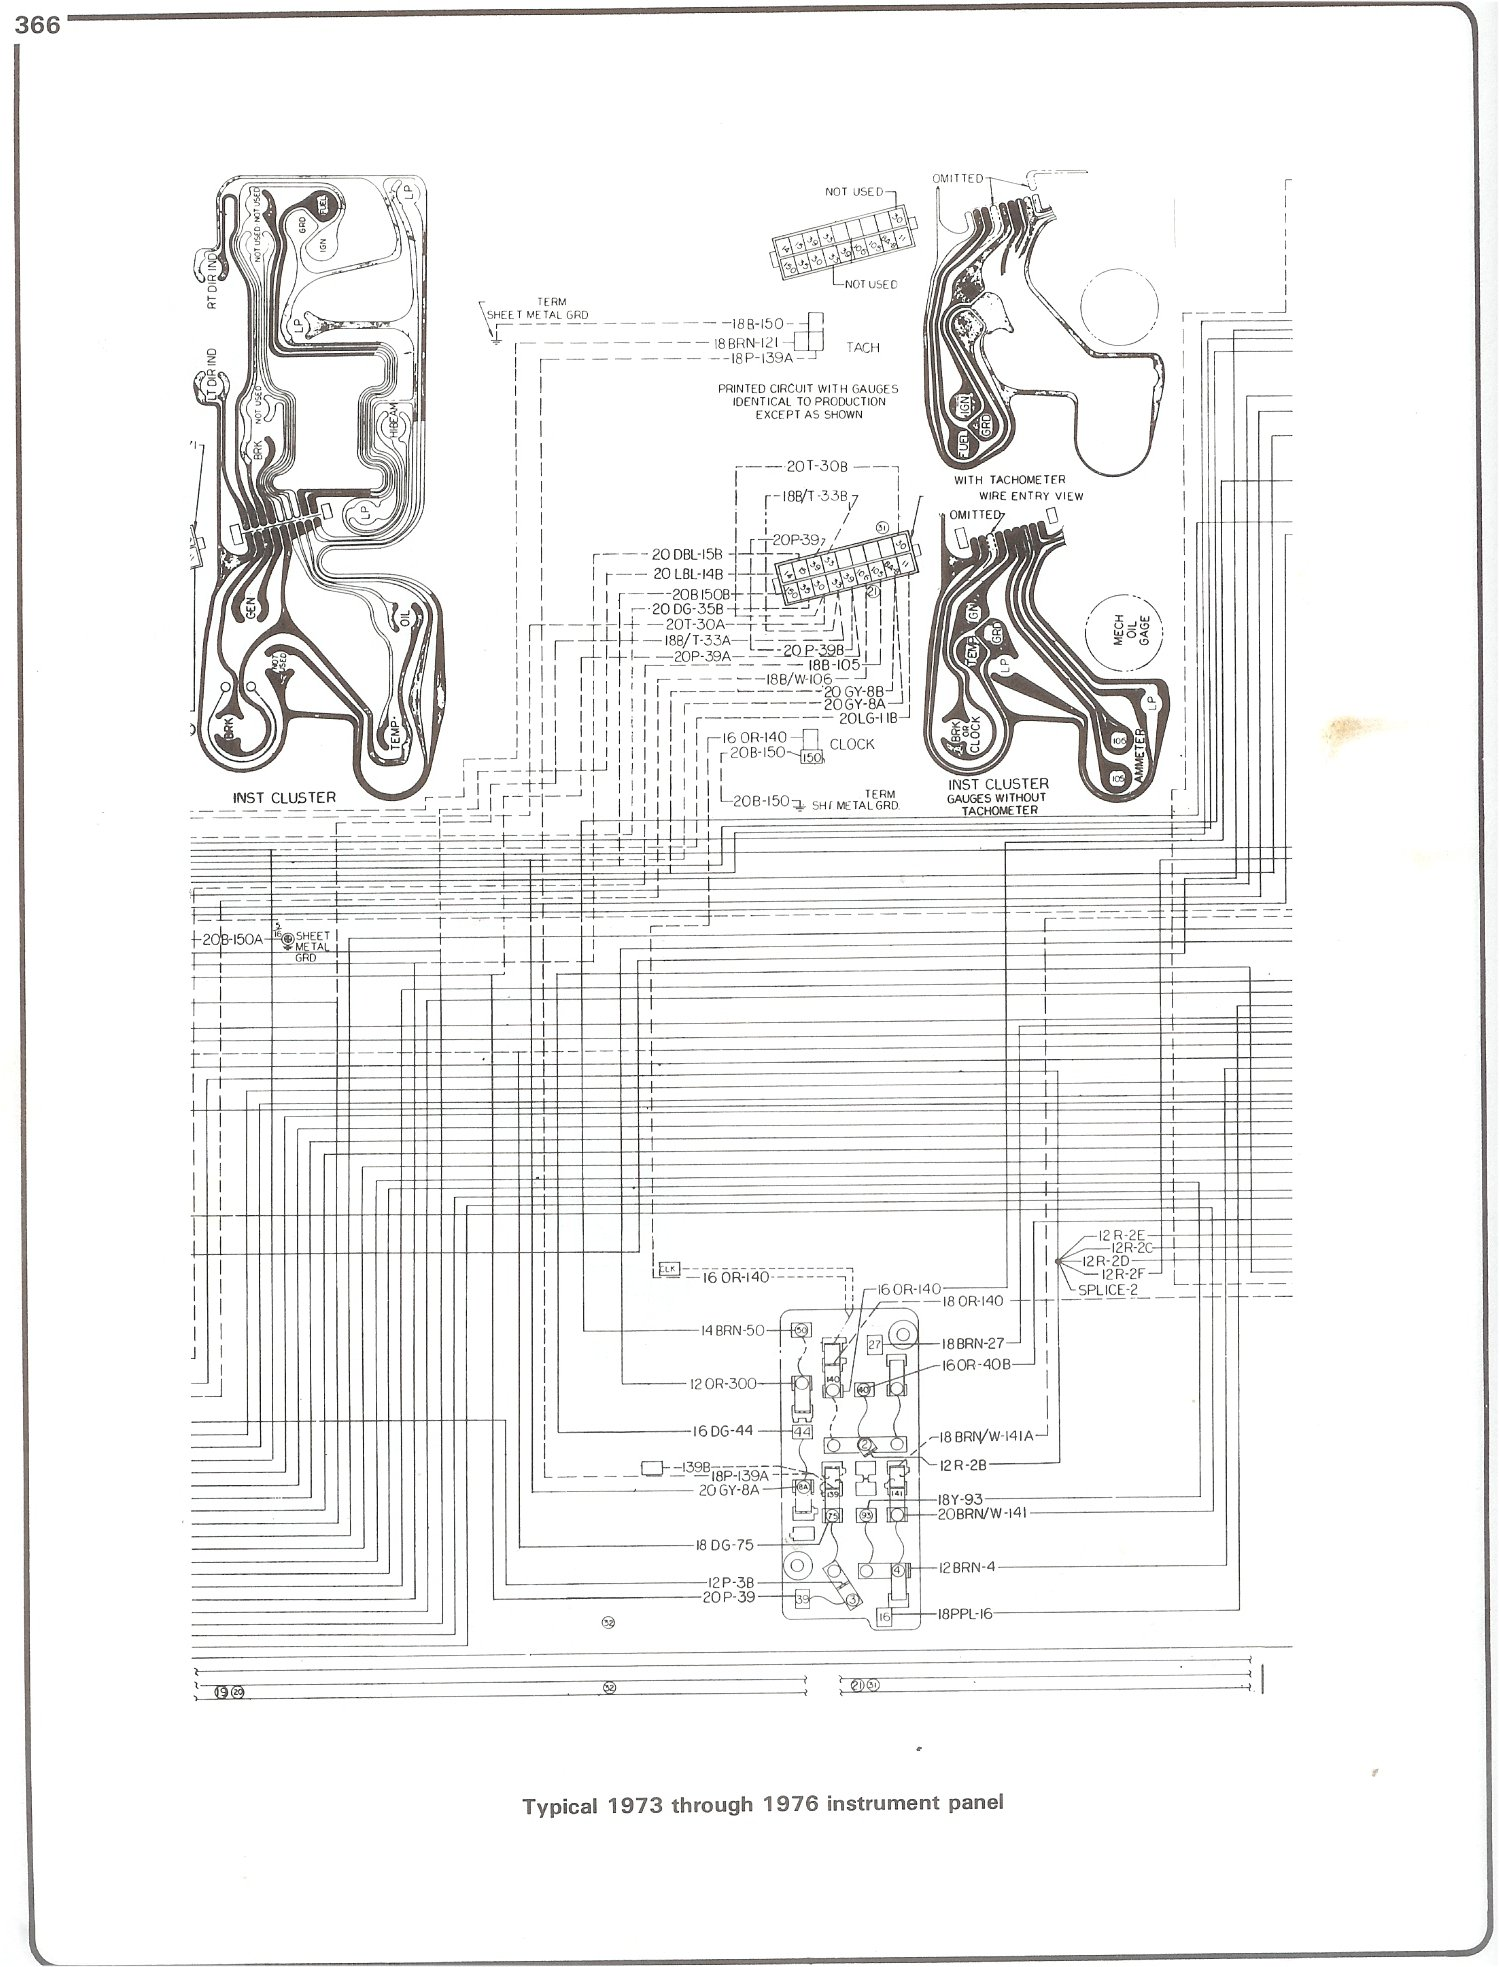 78 Gmc Wiring Diagram Diagrams Box 1979 4500 Electrical Complete 73 87 2004 Radio